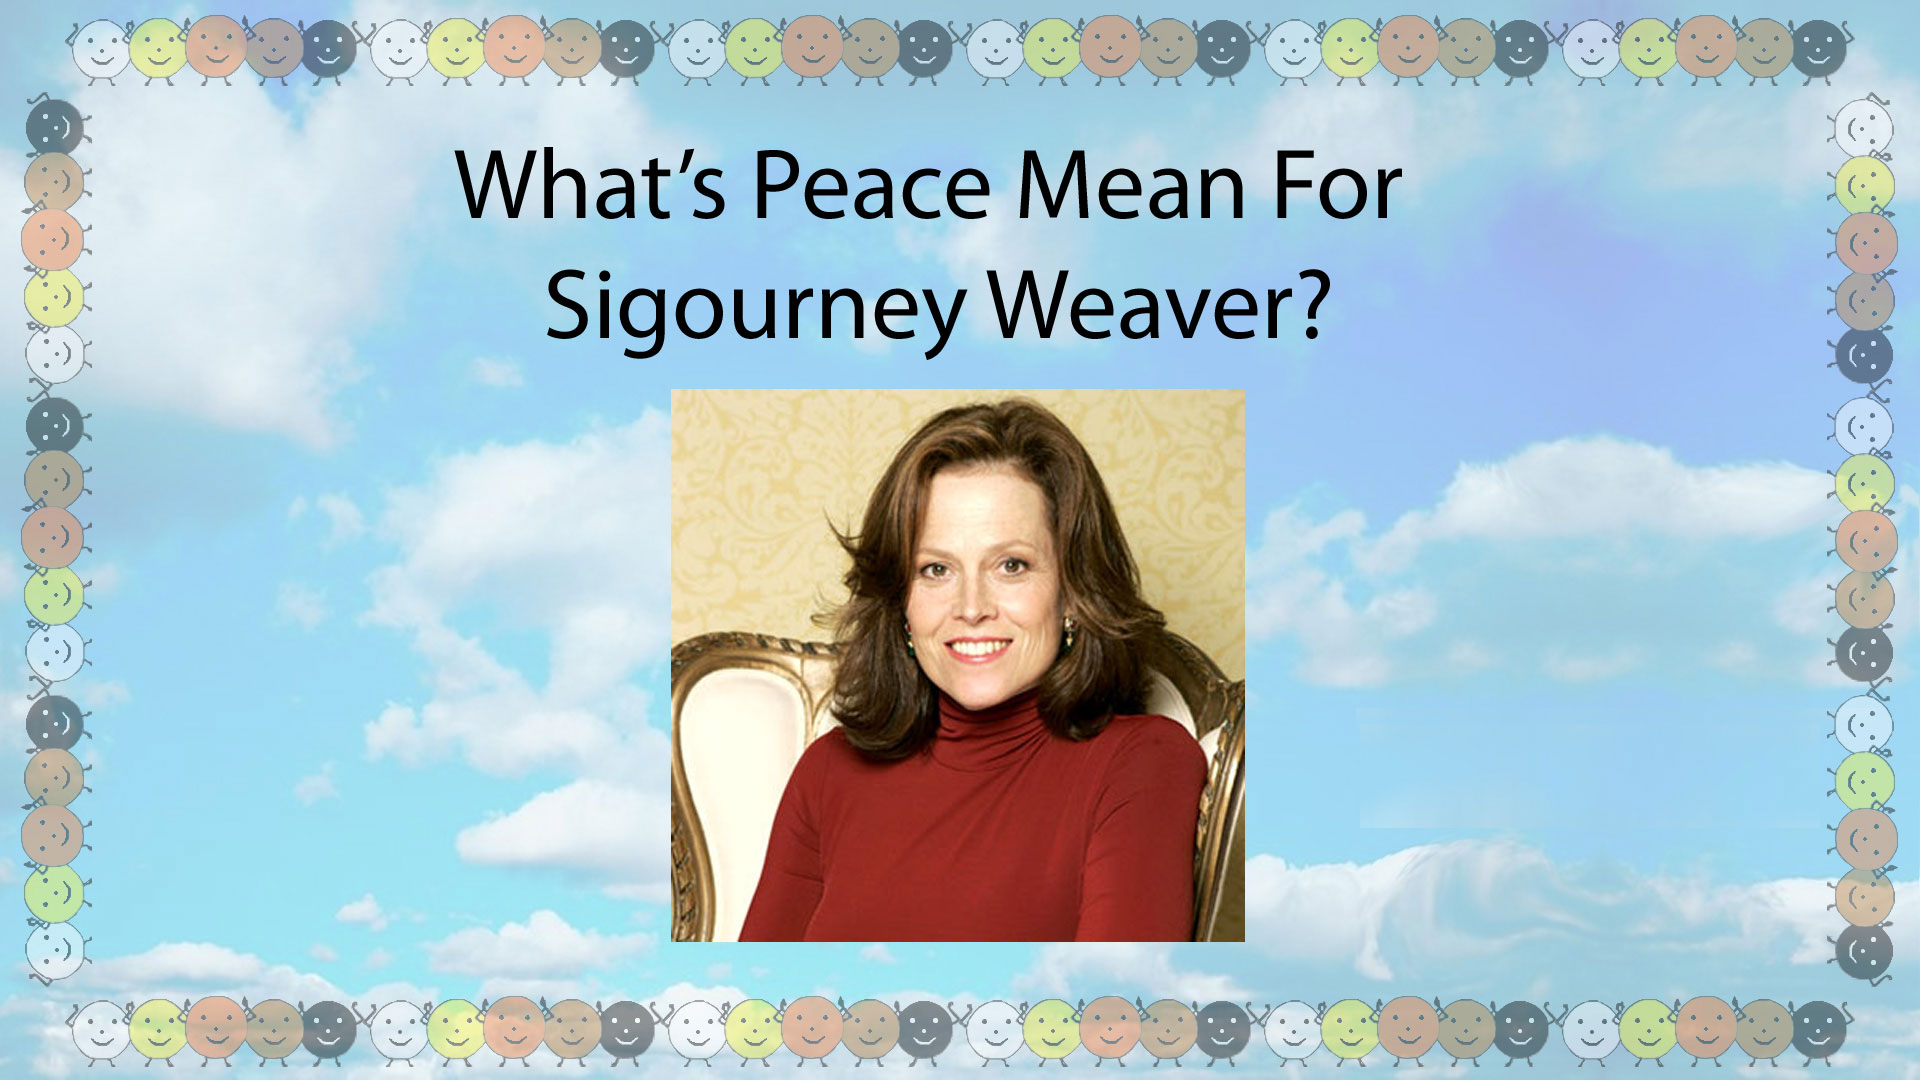 Sigourney Weaver, What's Peace Mean to Her?